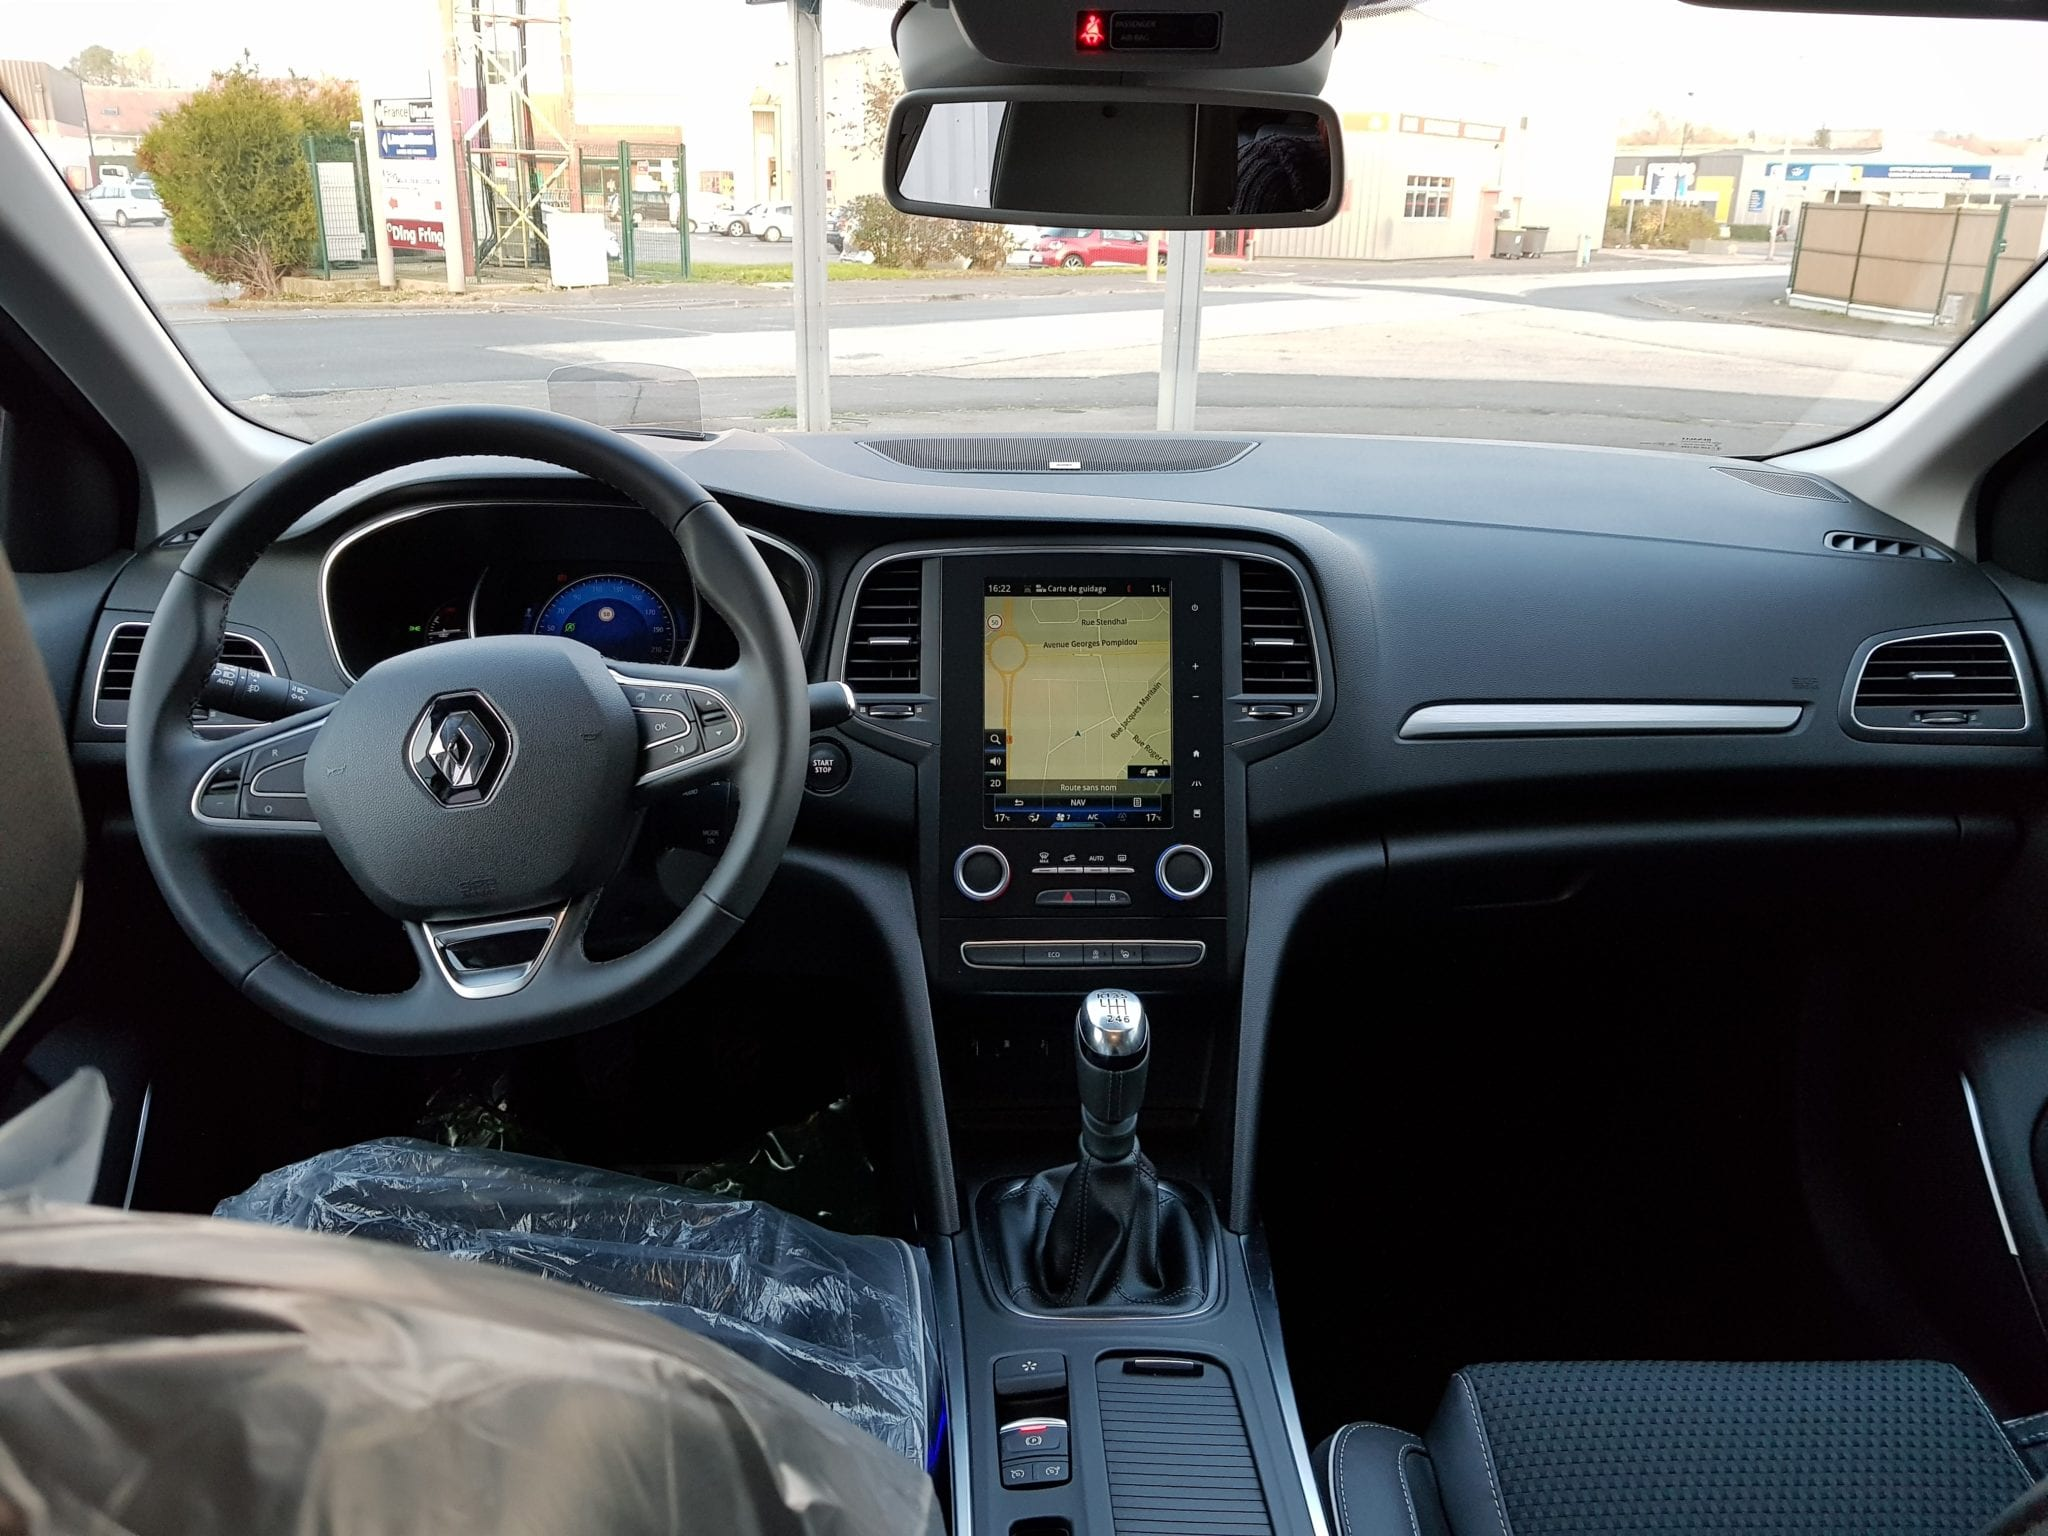 Renault MEGANE 4 BOSE EDITION ENERGY 1.6 DCI 130 - Image 4